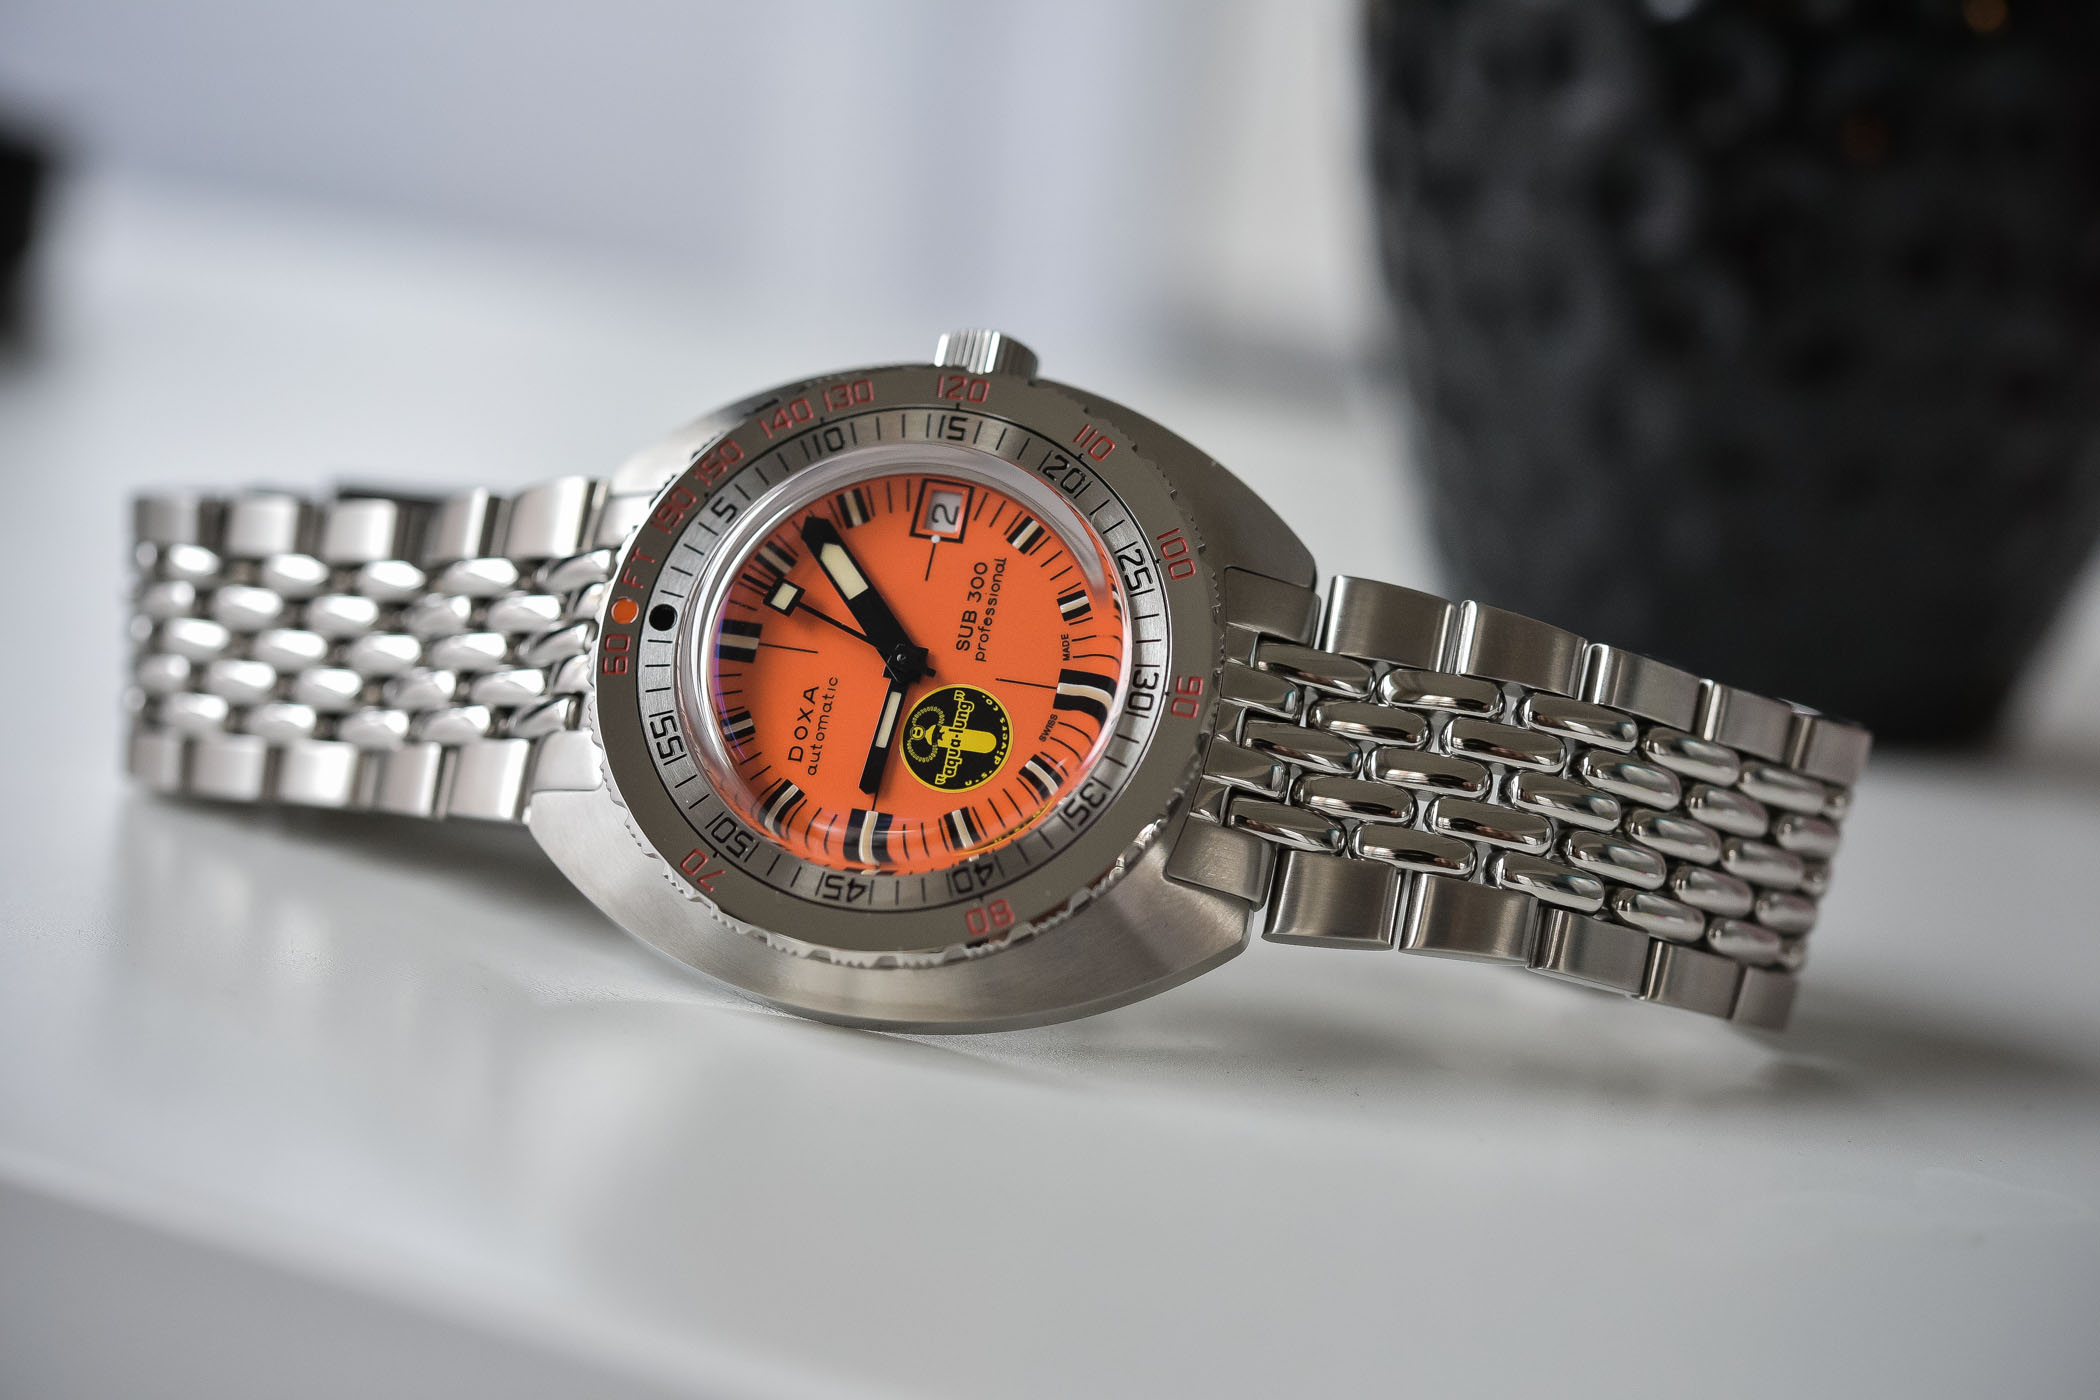 Doxa SUB-300 Black Lung Reissue